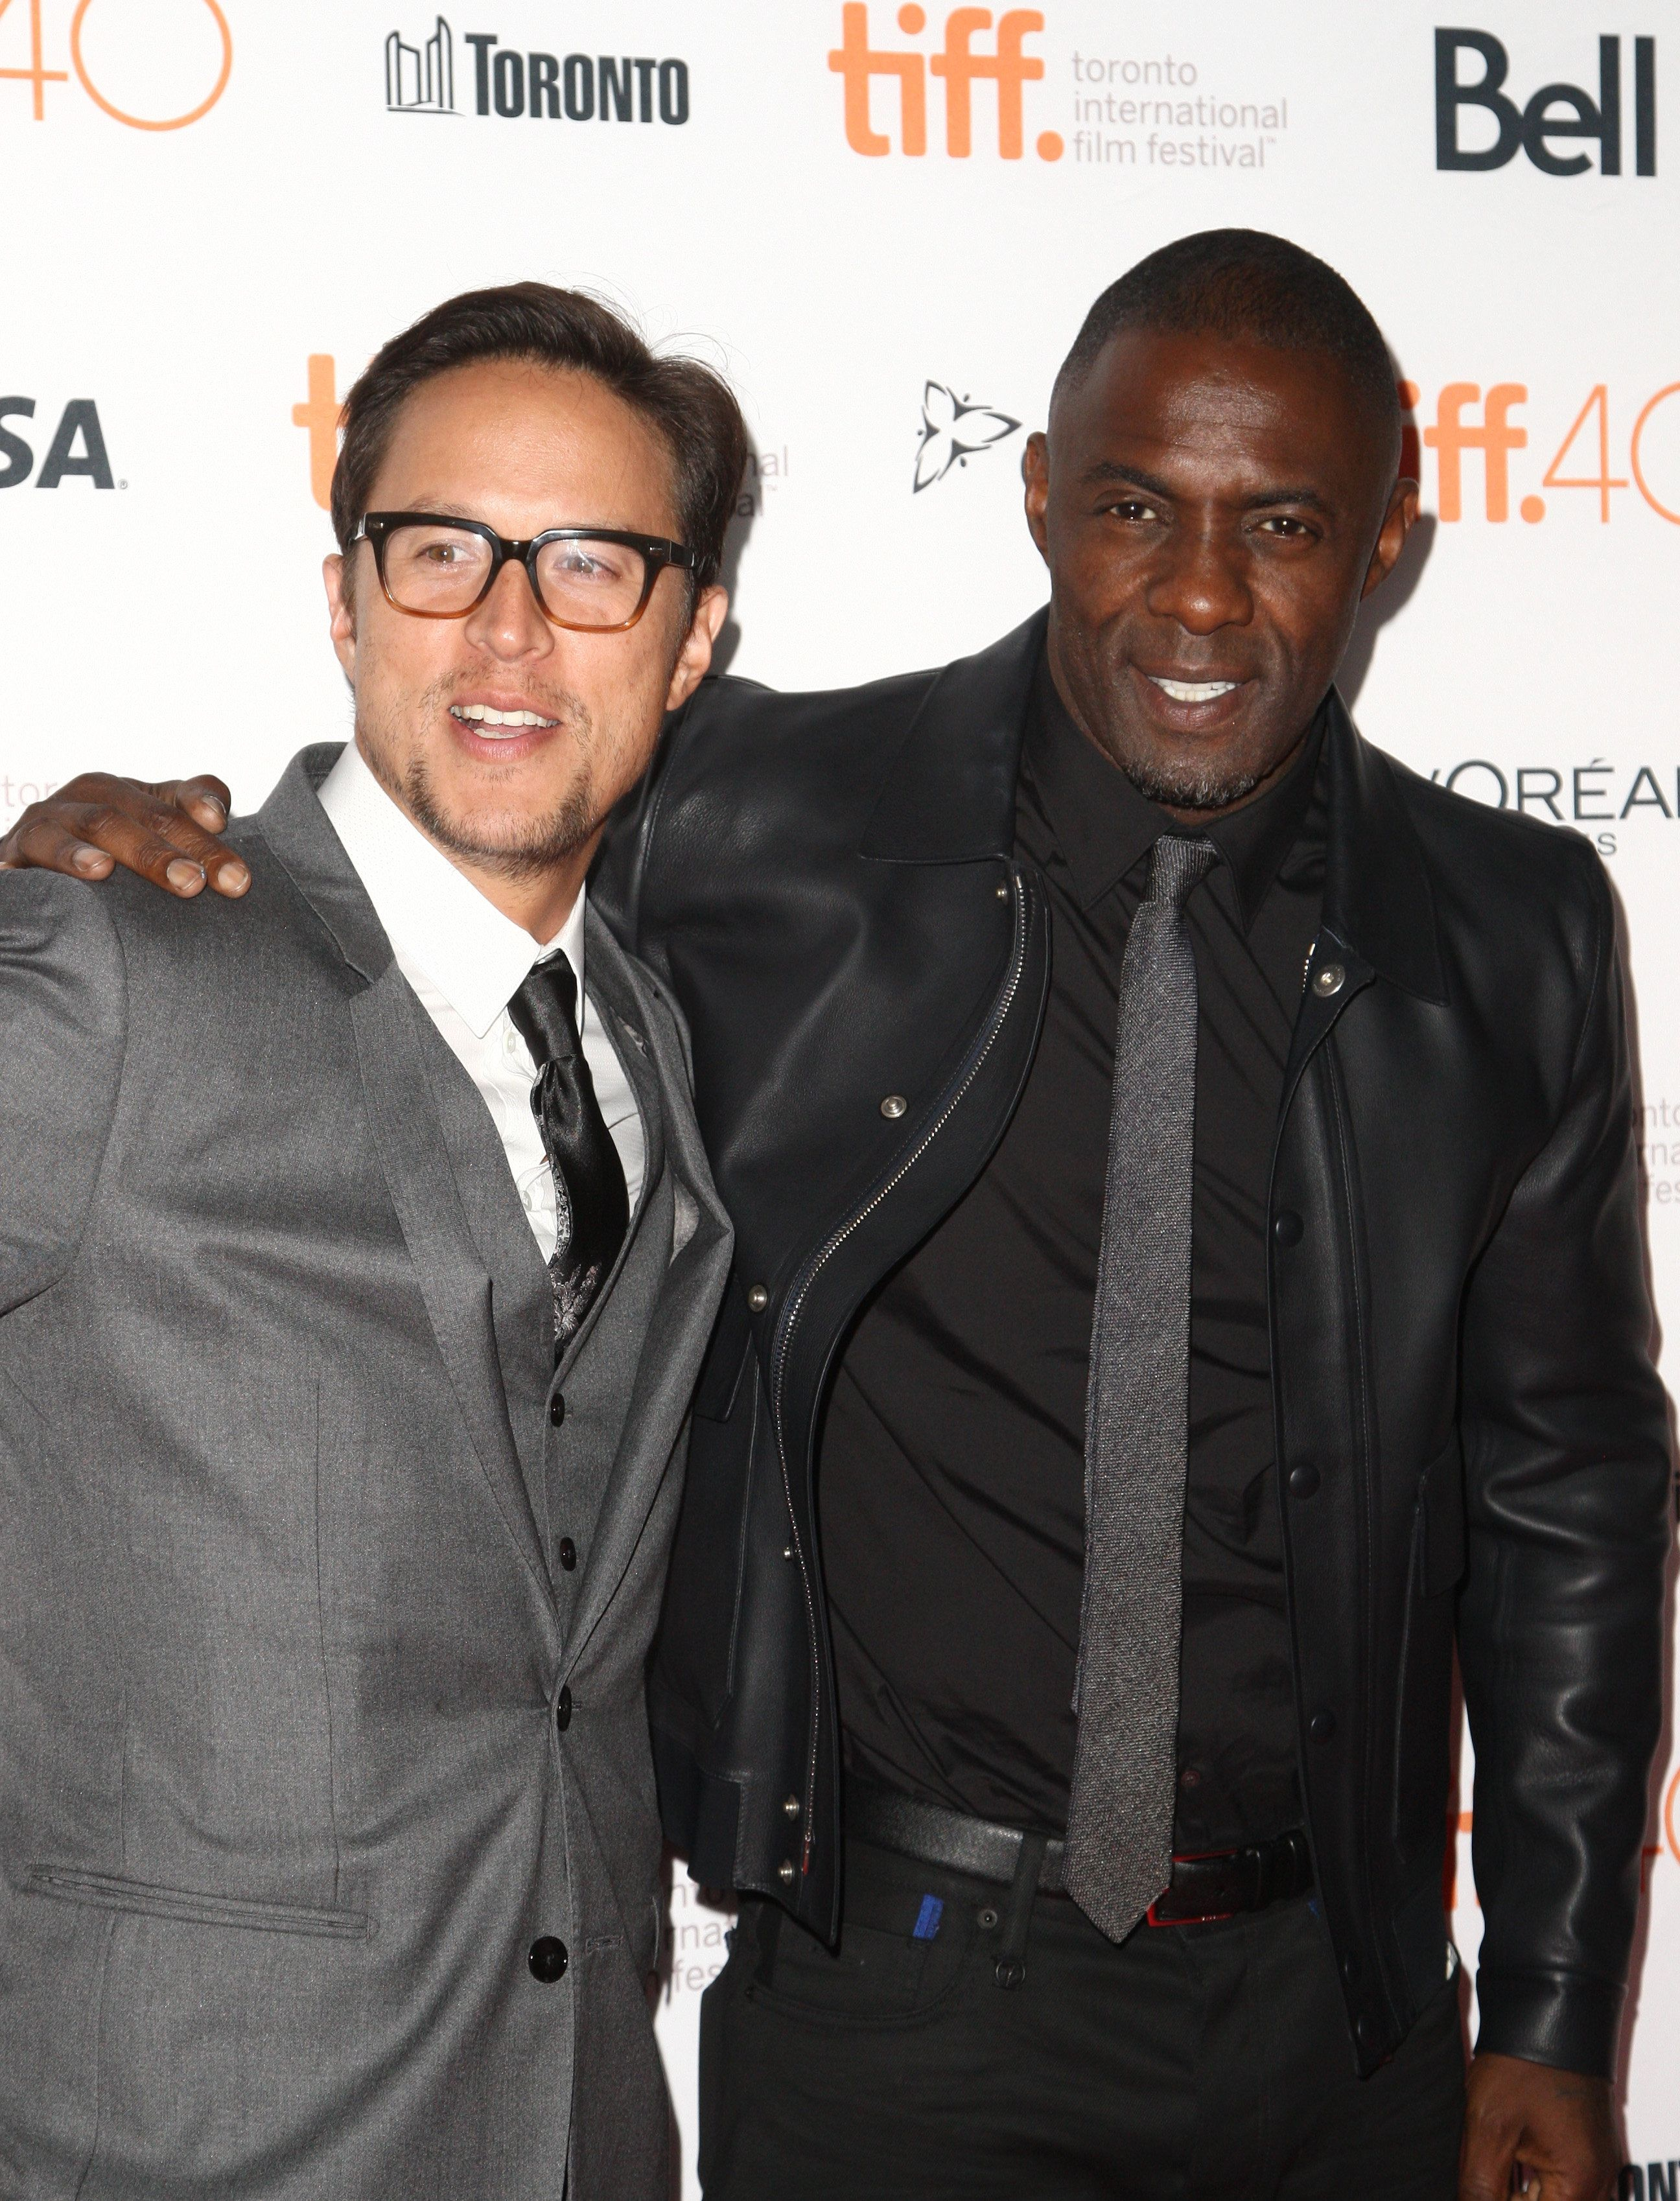 TORONTO, ON - SEPTEMBER 13: Director/screenwriter Cary Joji Fukunaga and actor Idris Elba attend the 'Beasts Of No Nation' premiere during the 2015 Toronto International Film Festival at Ryerson Theatre on September 13, 2015 in Toronto, Canada.  (Photo by Tommaso Boddi/Getty Images)